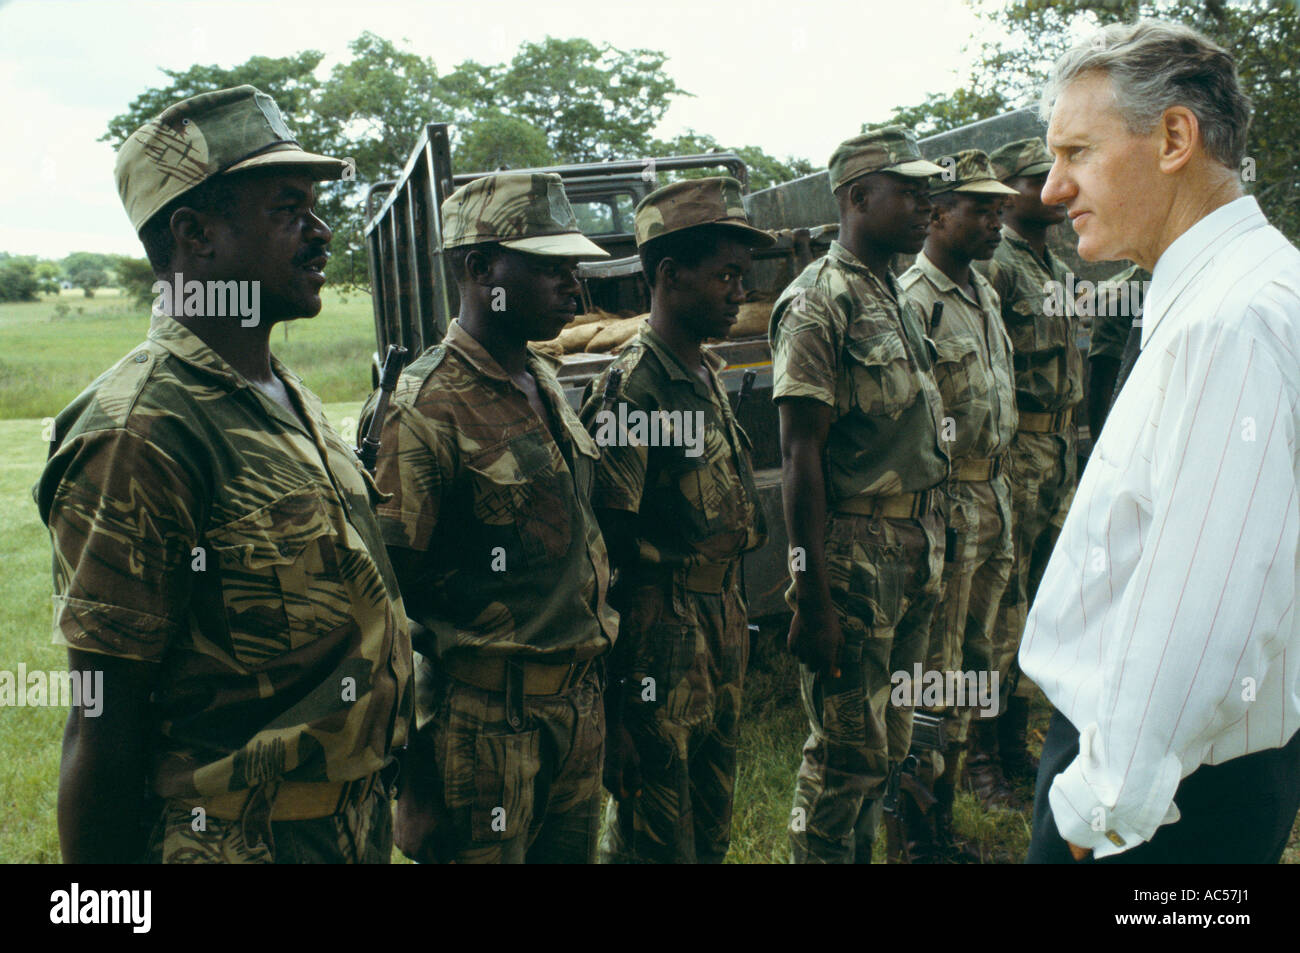 IAN SMITH INSPECTS TROOPS IN RHODESIA 1979 - Stock Image